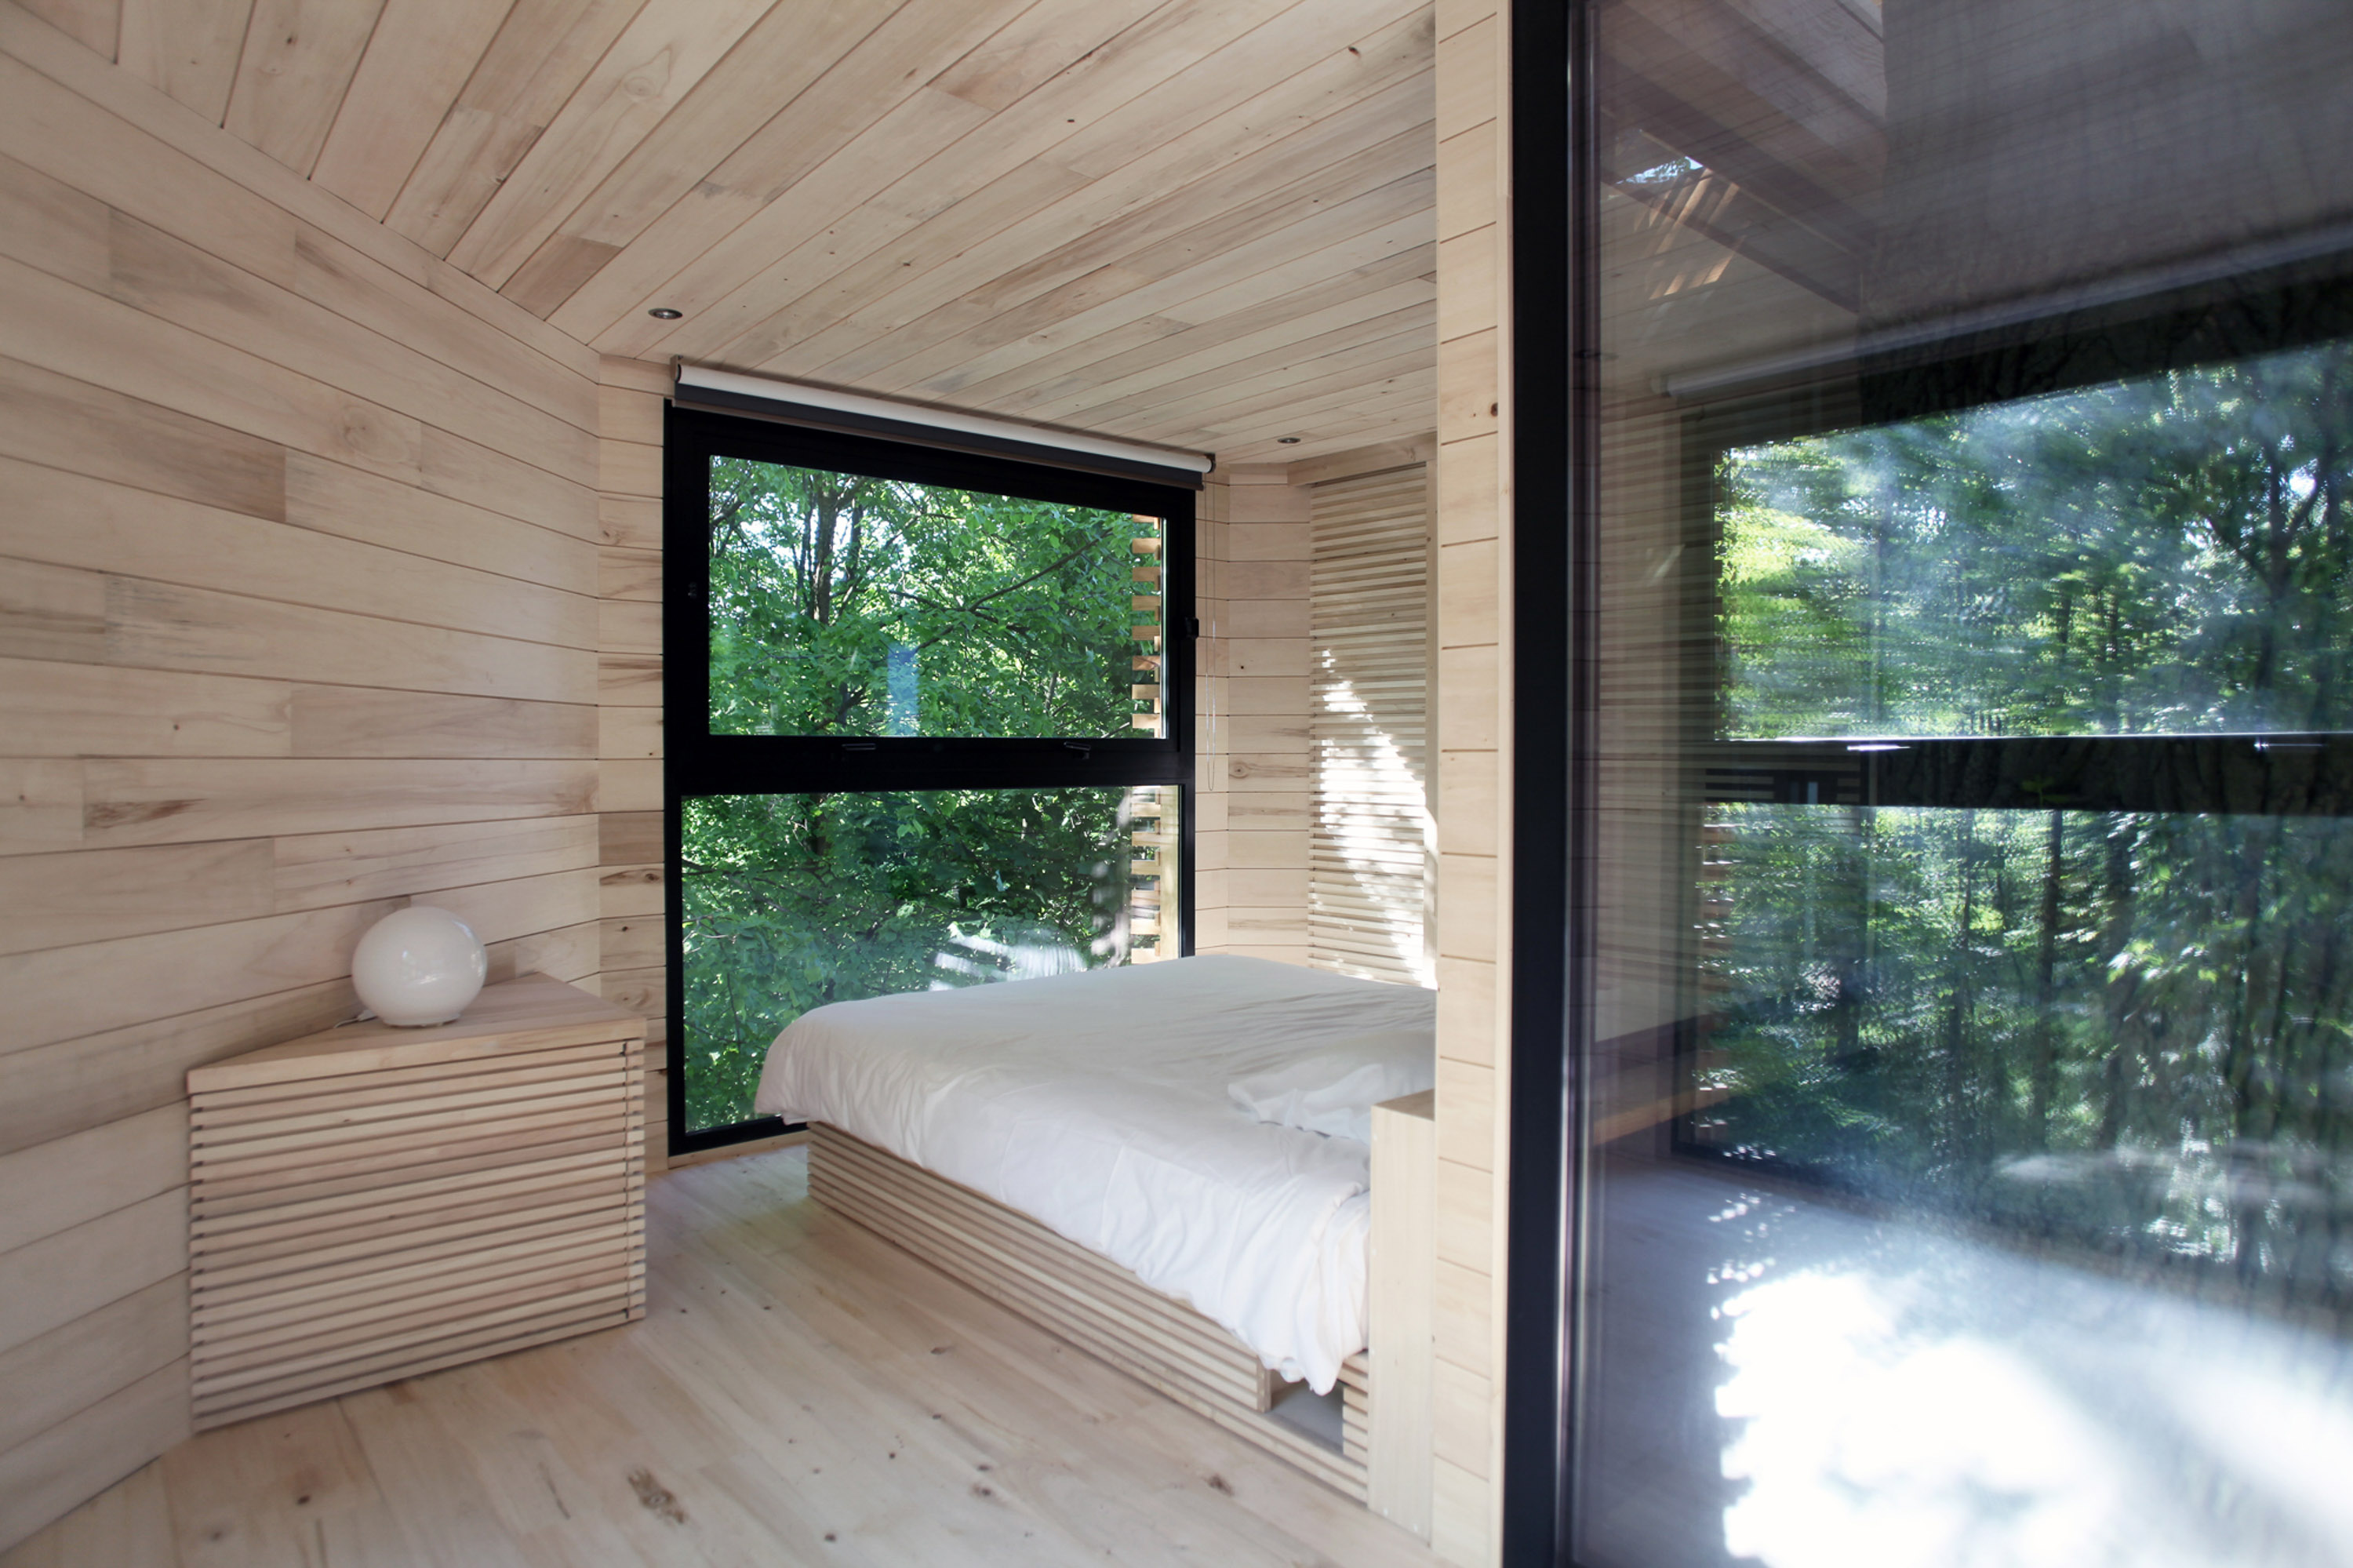 cabane dans les arbres en picardie la mini. Black Bedroom Furniture Sets. Home Design Ideas